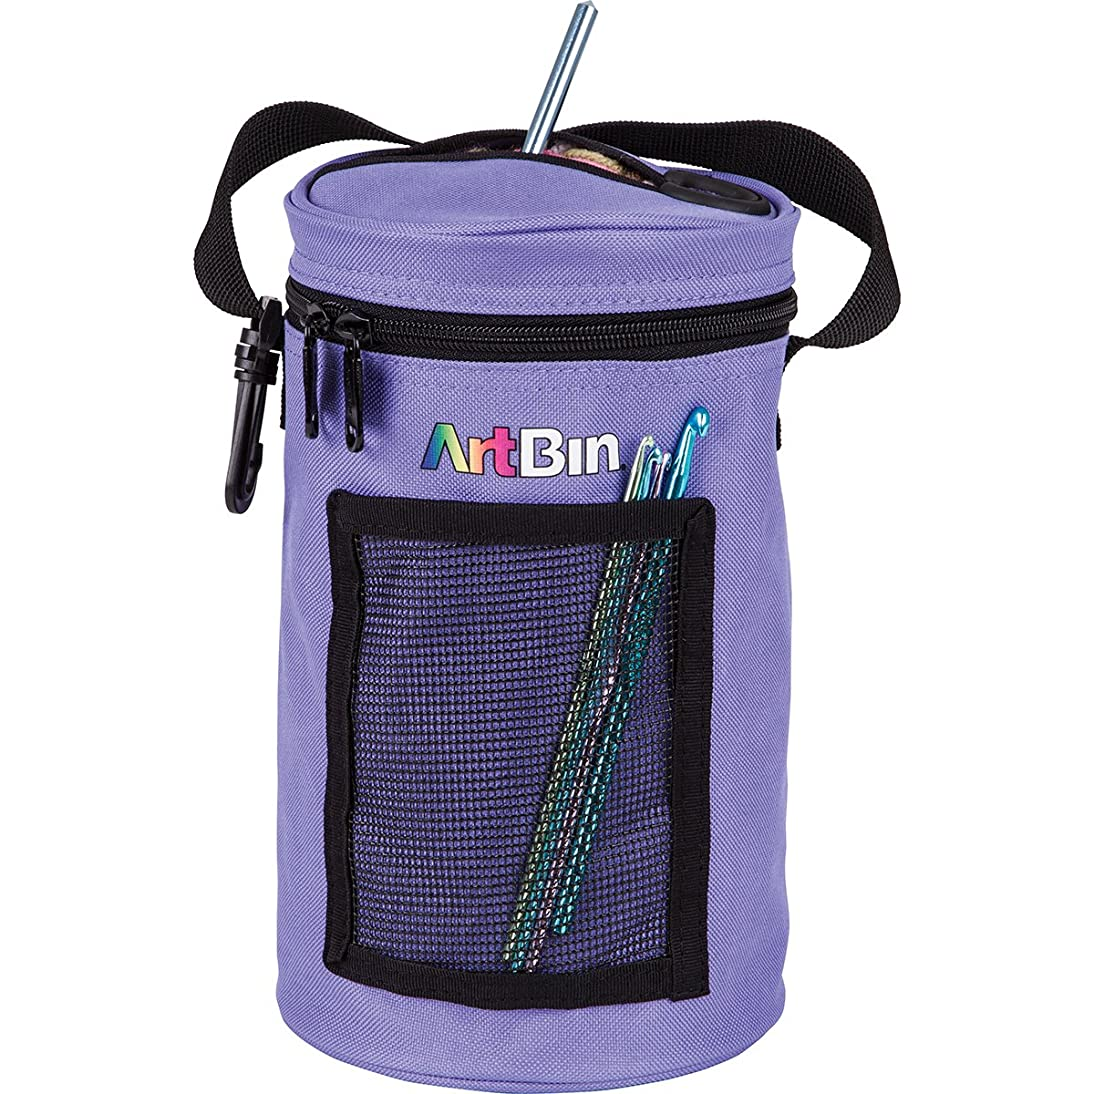 ArtBin Mini Yarn Drum Knitting and Crochet Tote Bag, Periwinkle 6832AG,